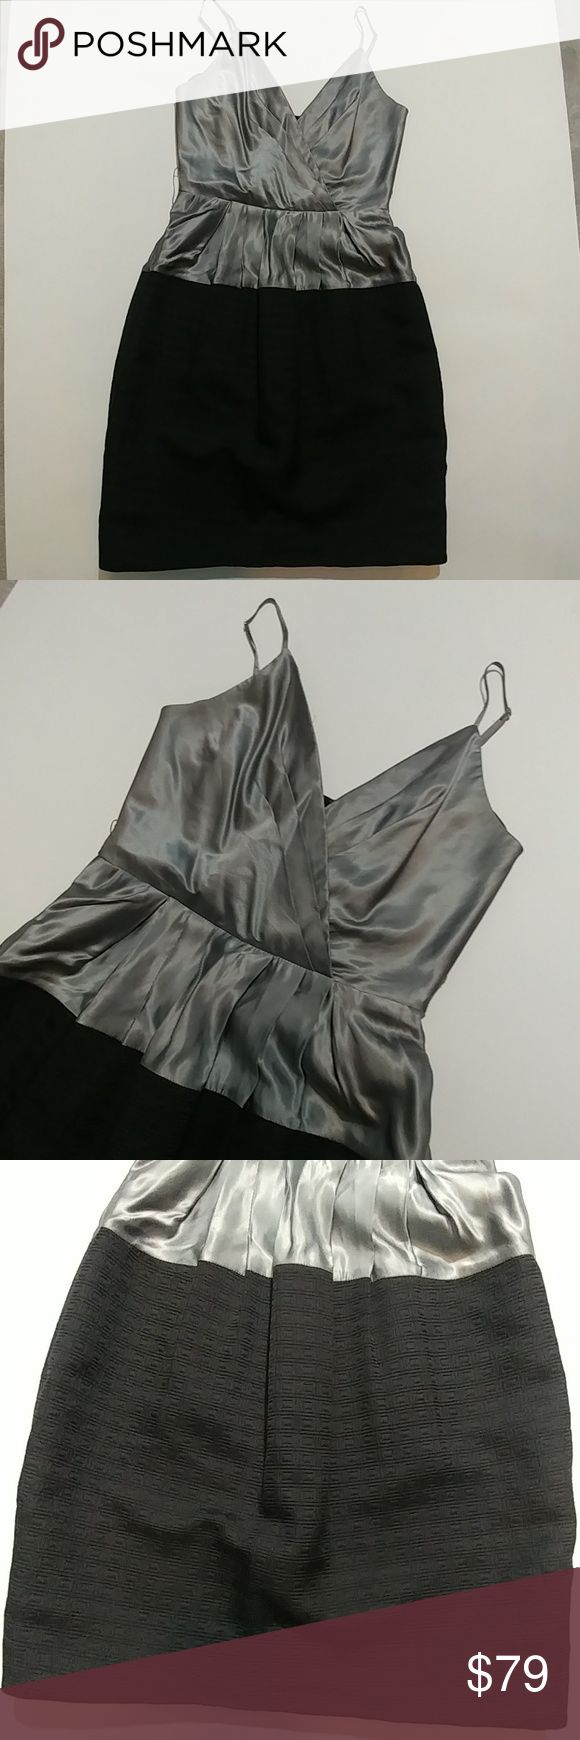 """NWOT BCBGMAXAZRIA occasion dress sz 6 Brand new, no tags, never worn from a smoke and pet free home No damage flaws or defects  Metallic gunmetal color faux wrap top with adjustable straps and fabric skirted portion, lined, gathers at waist for a beautiful silhouette Approx Measurements  Waist 13.5"""" Bust 15"""" Length 32.5"""" BCBGMaxAzria Dresses Mini"""